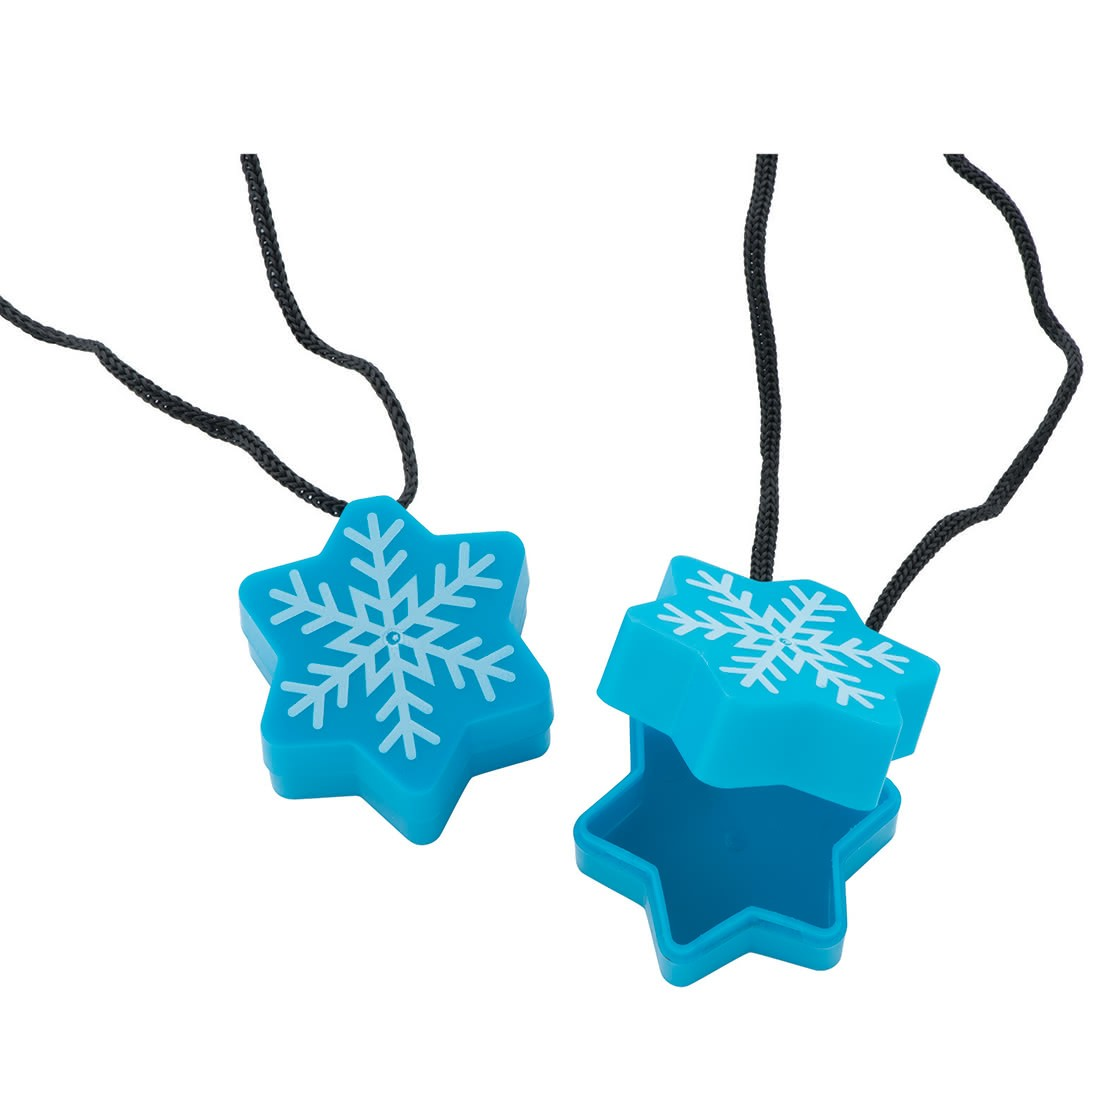 Snowflake Tooth Holder Necklaces [image]